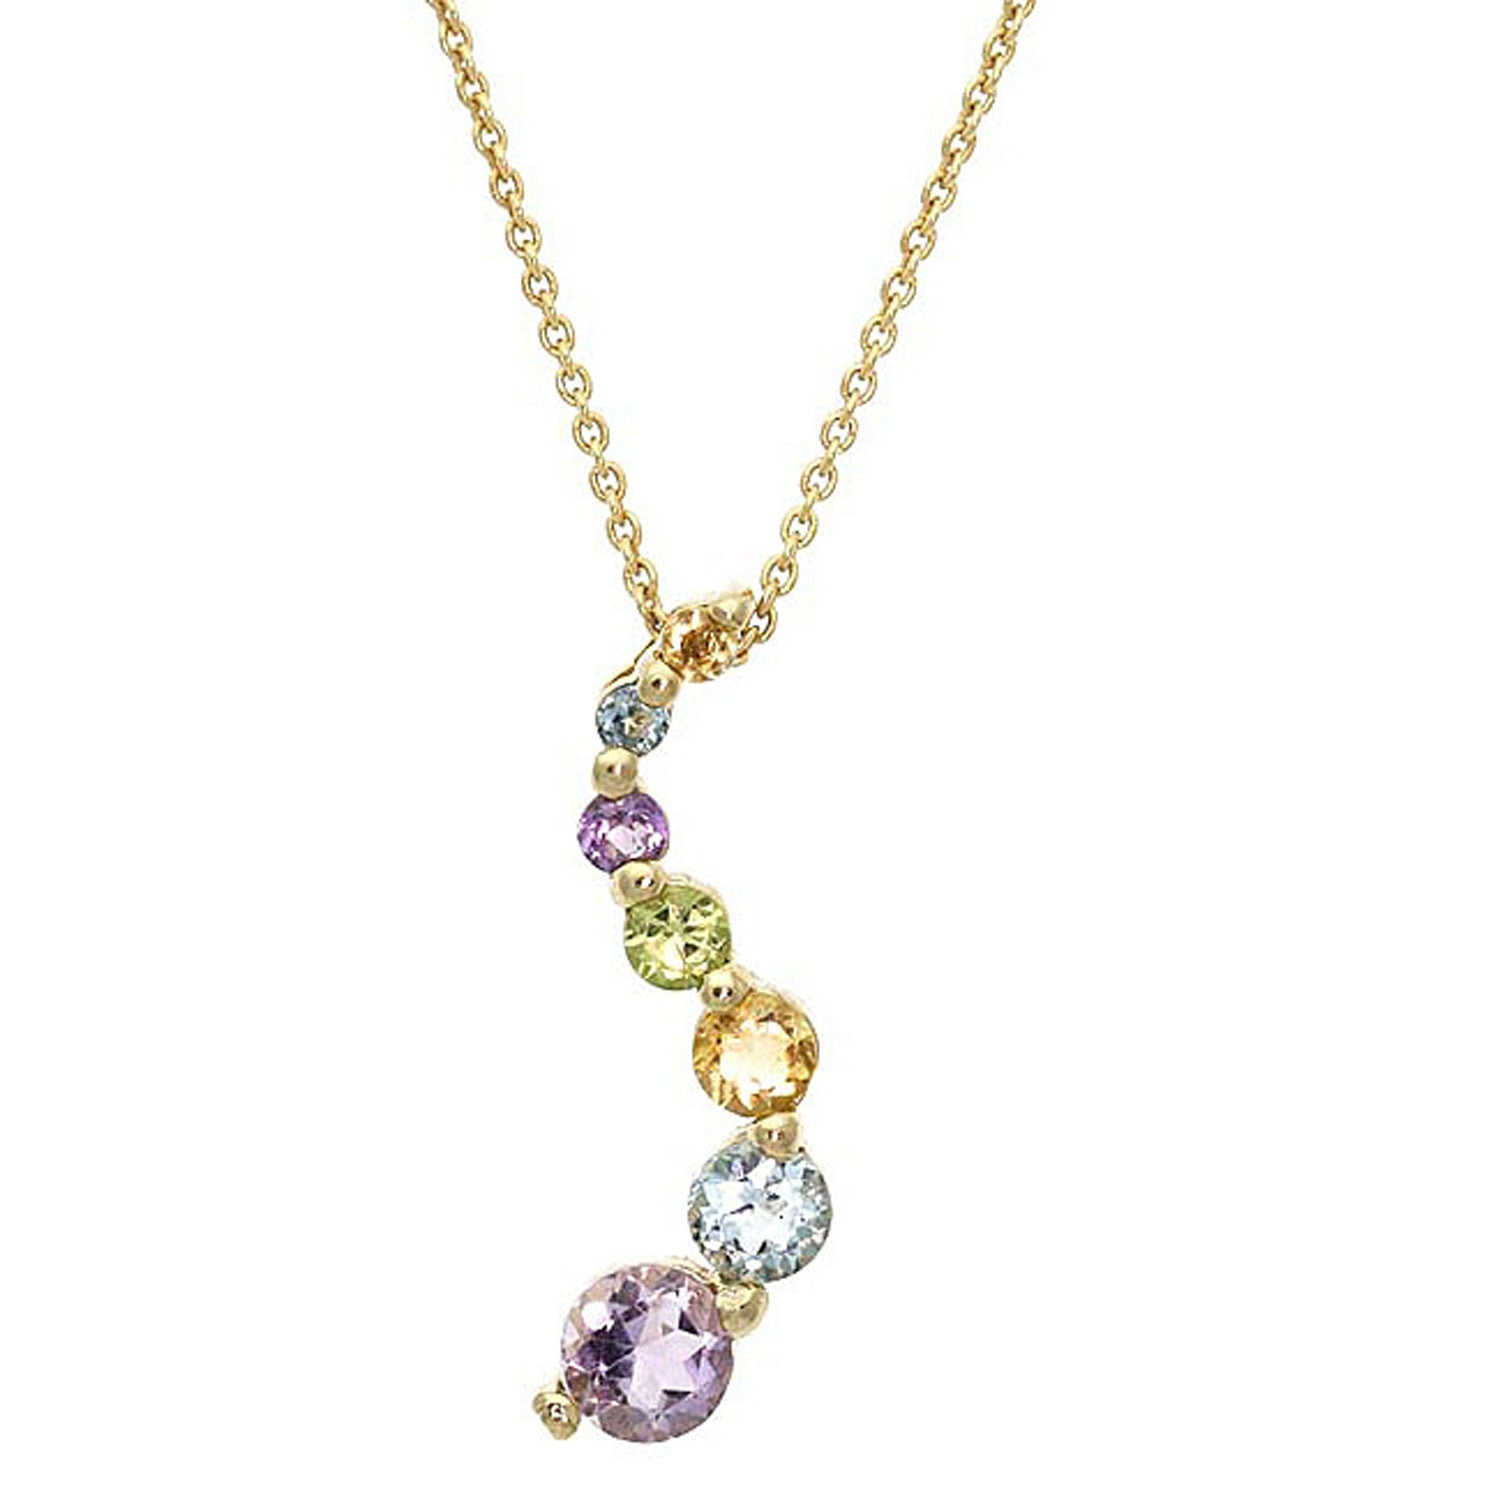 Gemstone 18 Inch Cable Chained Journey Necklace - 18k Gold / Multi